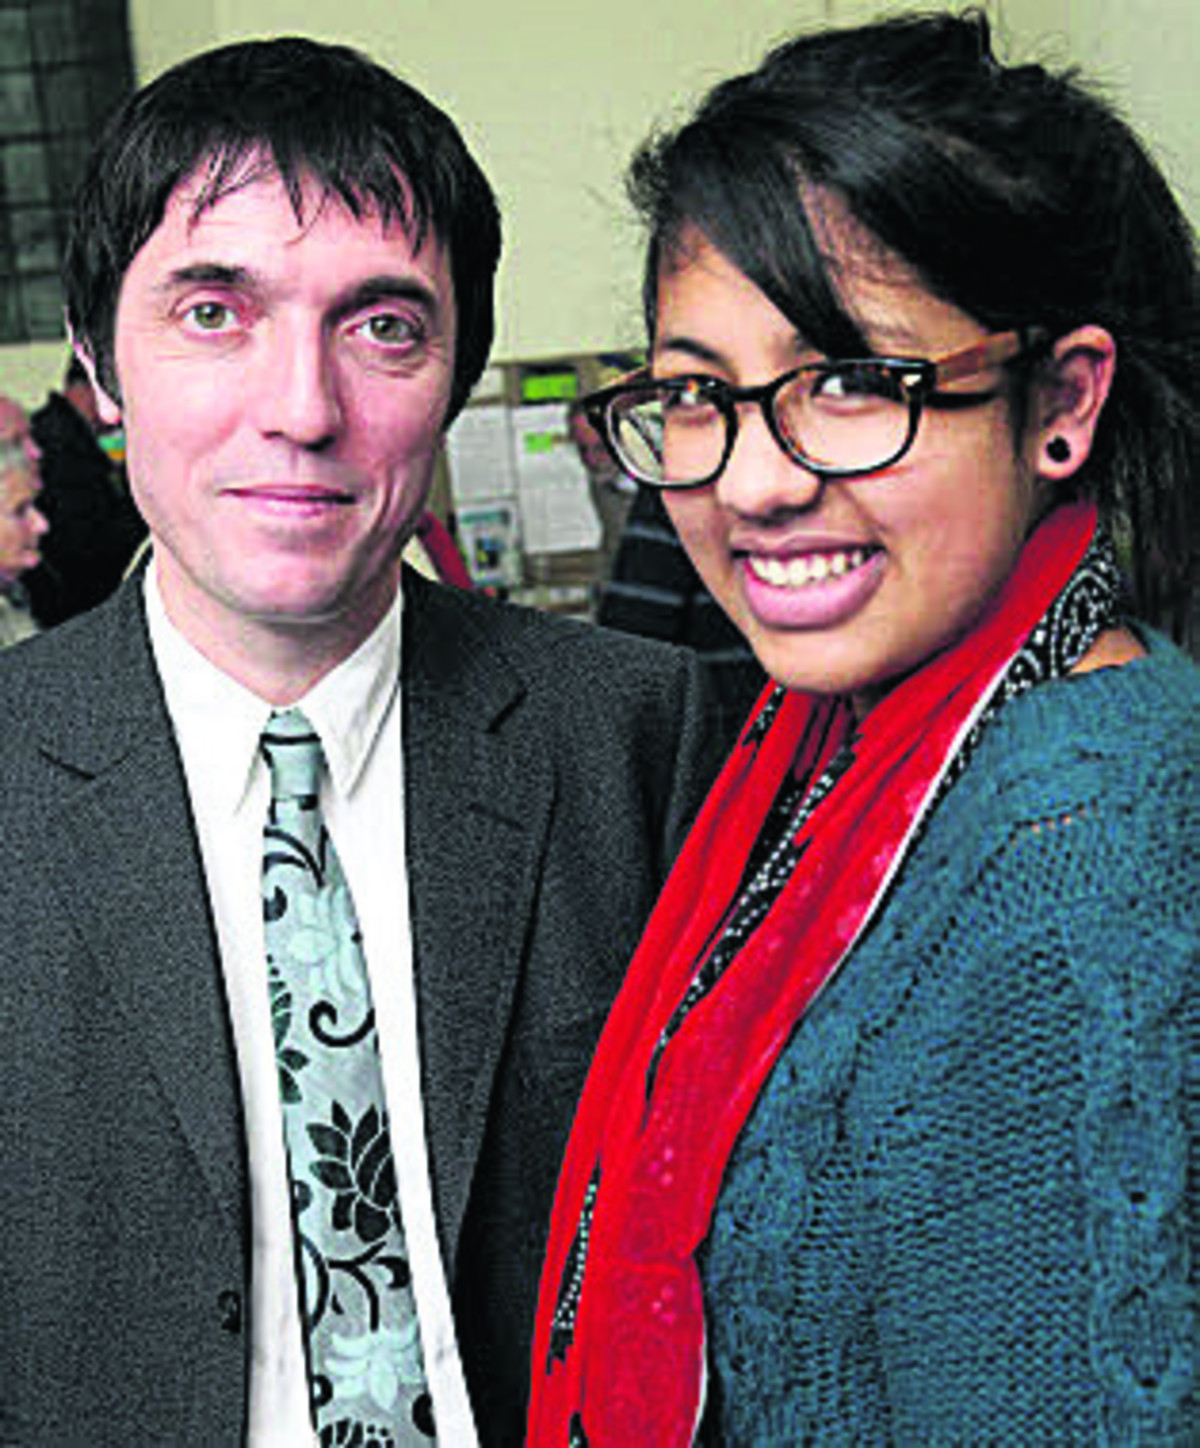 Radionhead's bassist Colin Greenwood with radio reporter Naiha Masih from the Children's Radio Foundation